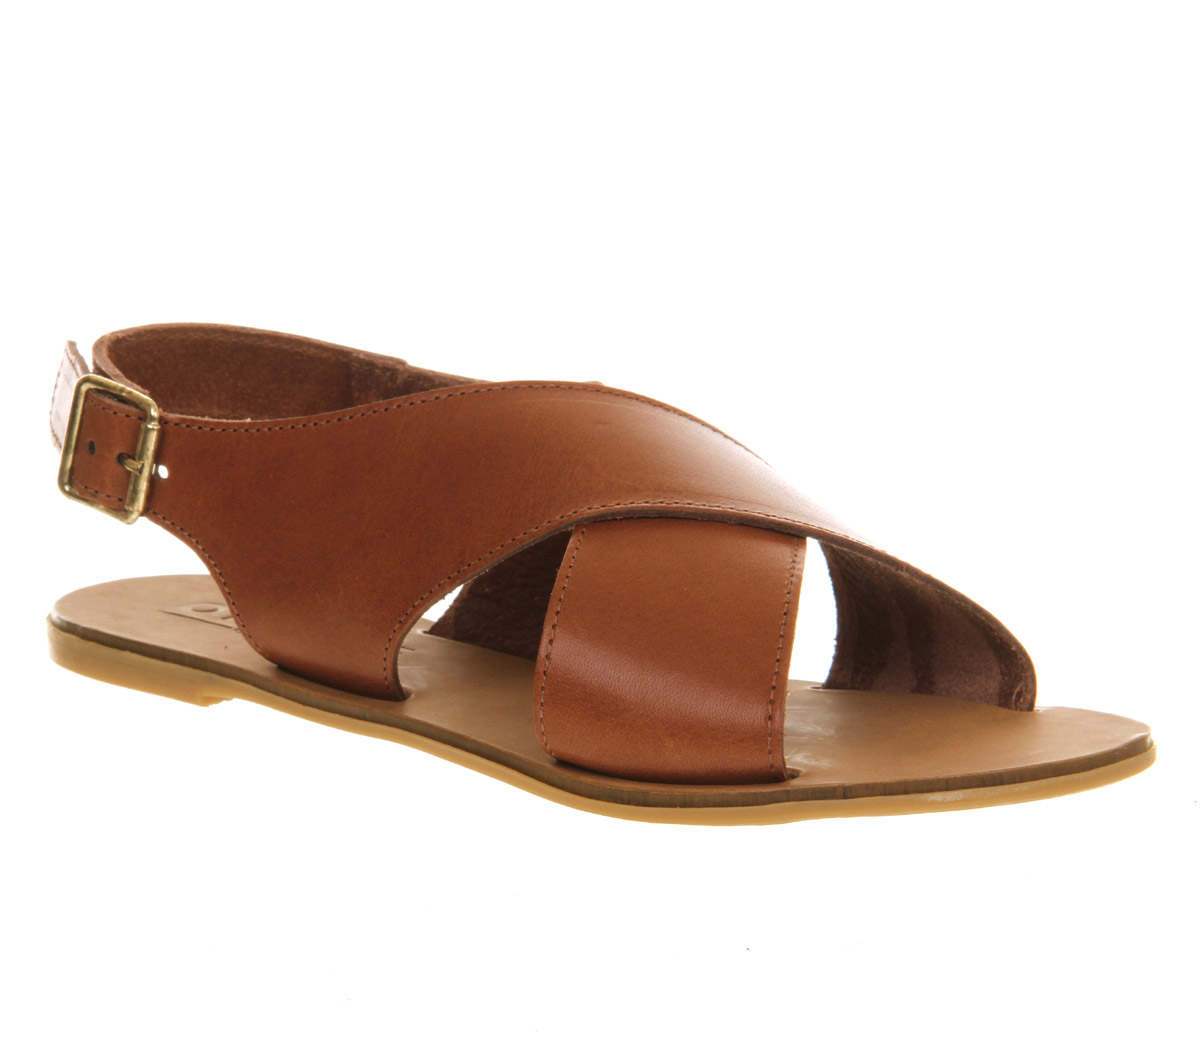 Find great deals on eBay for leather sandals. Shop with confidence.